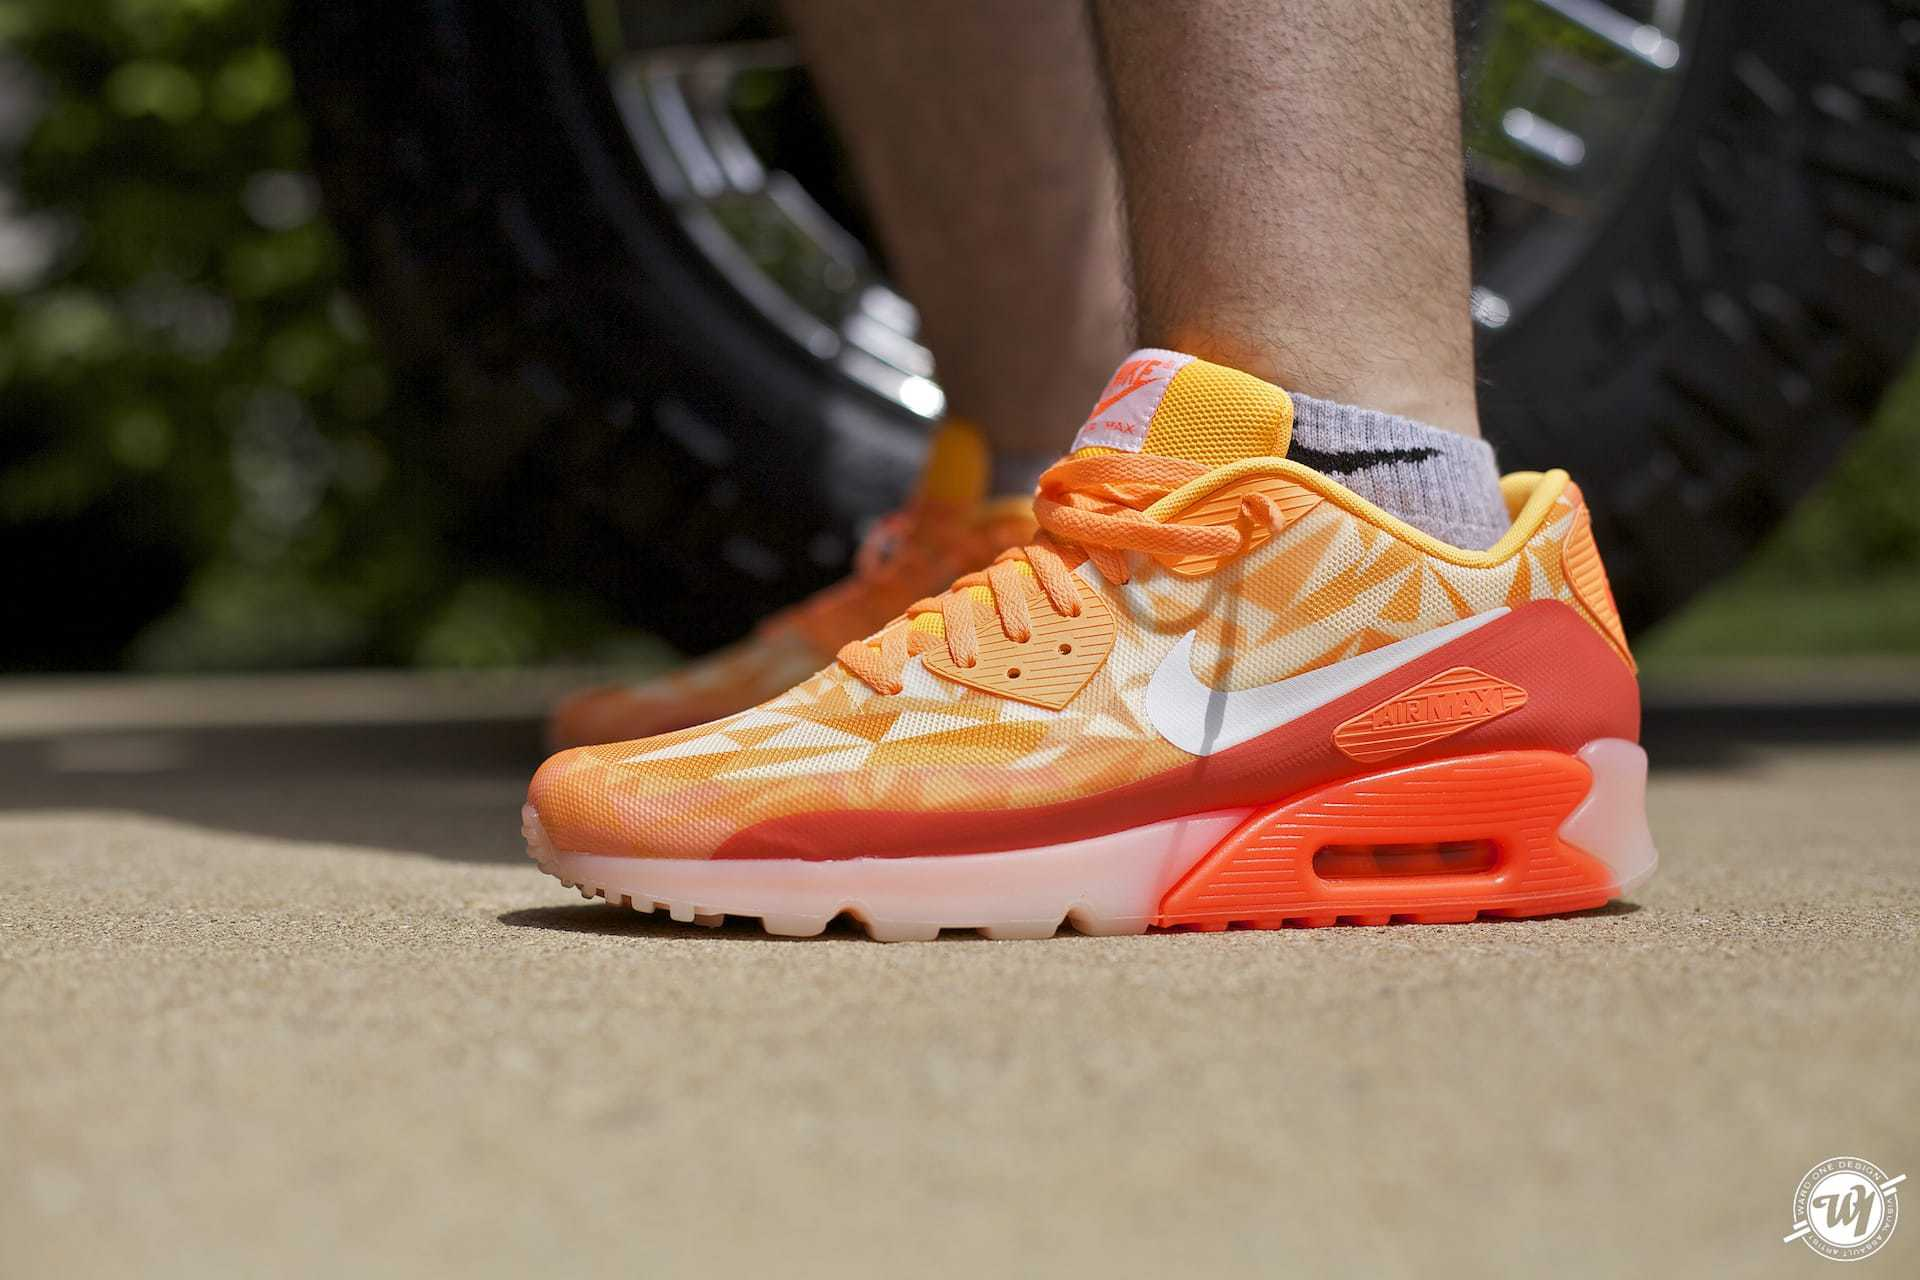 low priced 7decc c7f4a australia tel 614 299 nike air max 90 2c303 1be29